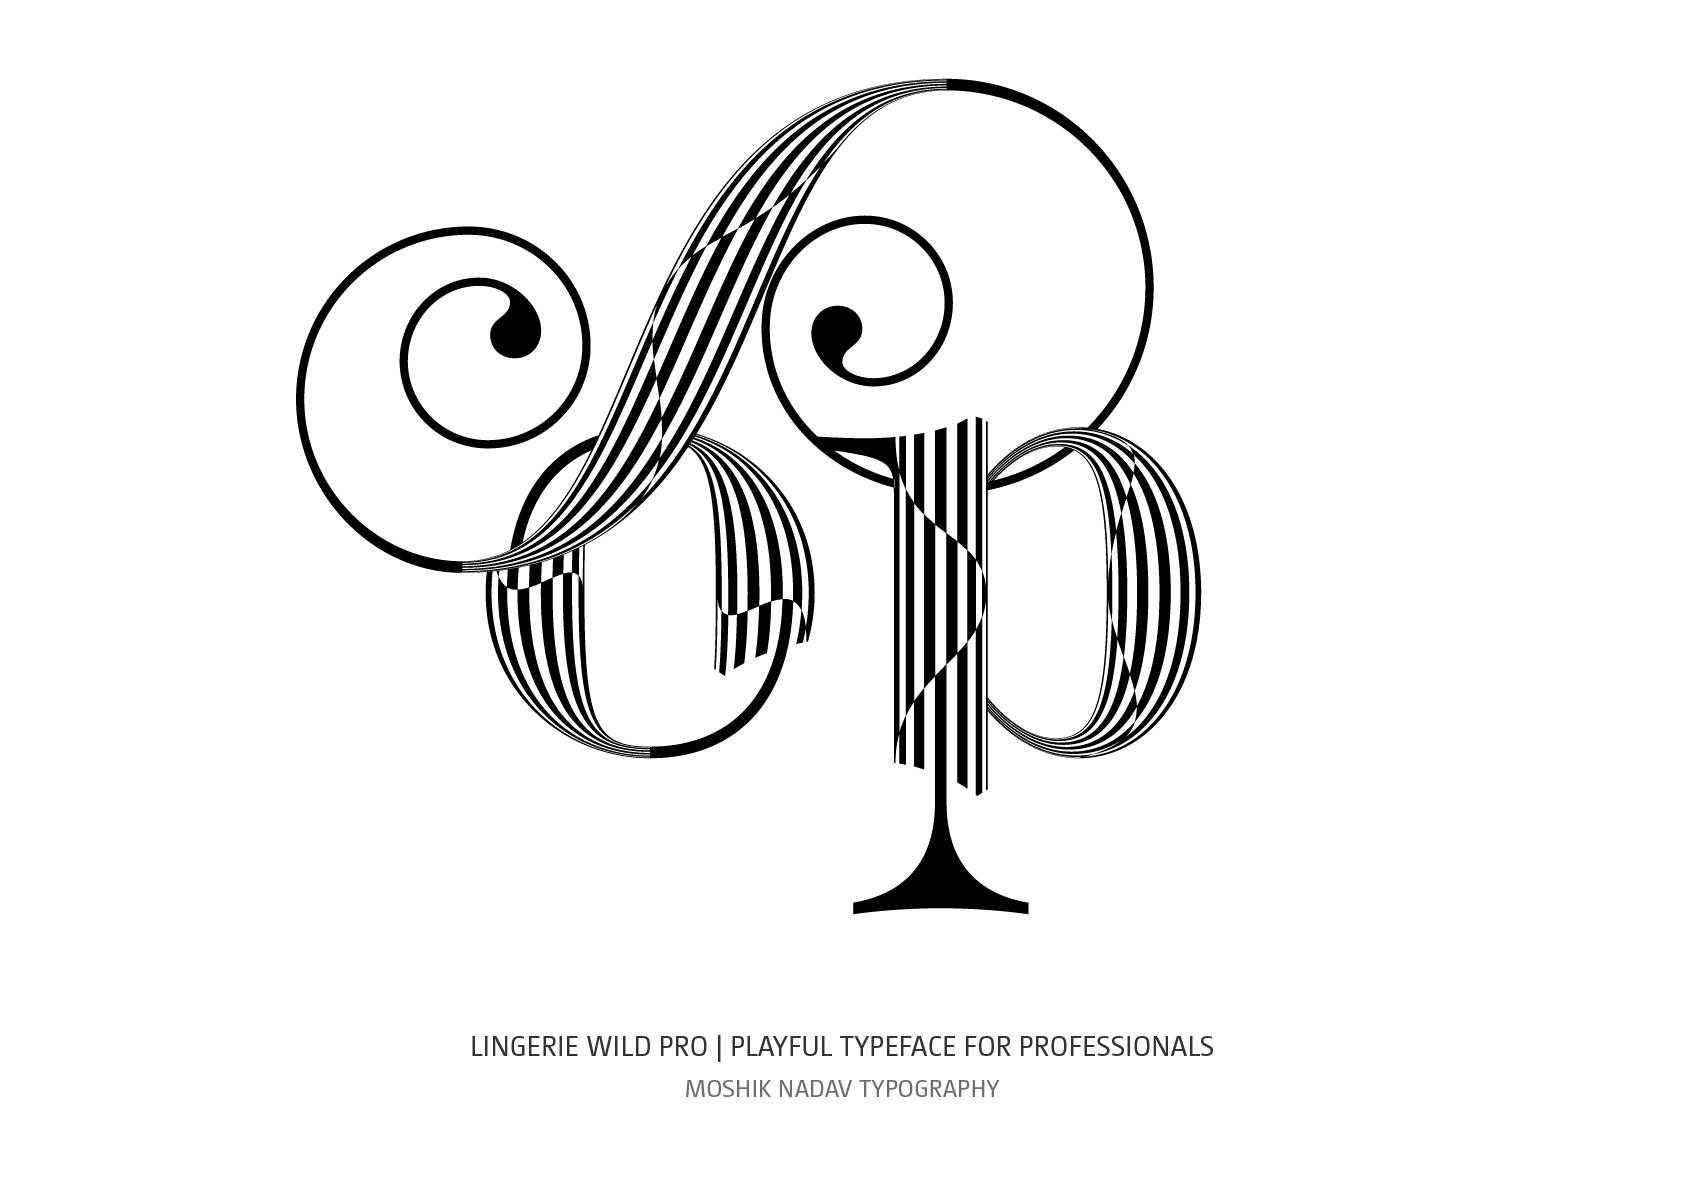 op ligature designed by moshik Nadav Fashion Typography NYC based design studio